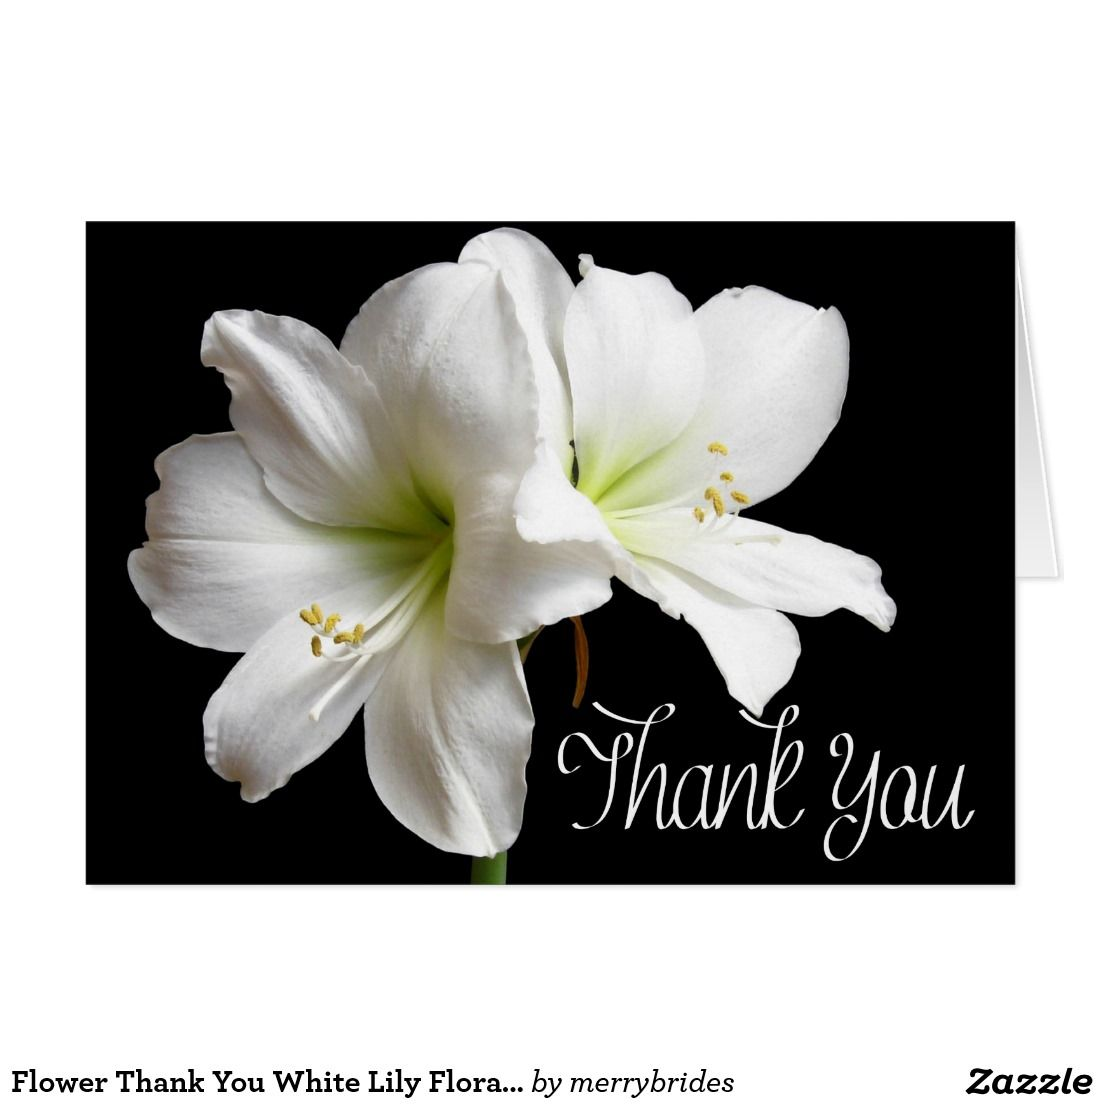 Flower thank you white lily floral black card black and white love white lilies flower greeting card on black izmirmasajfo